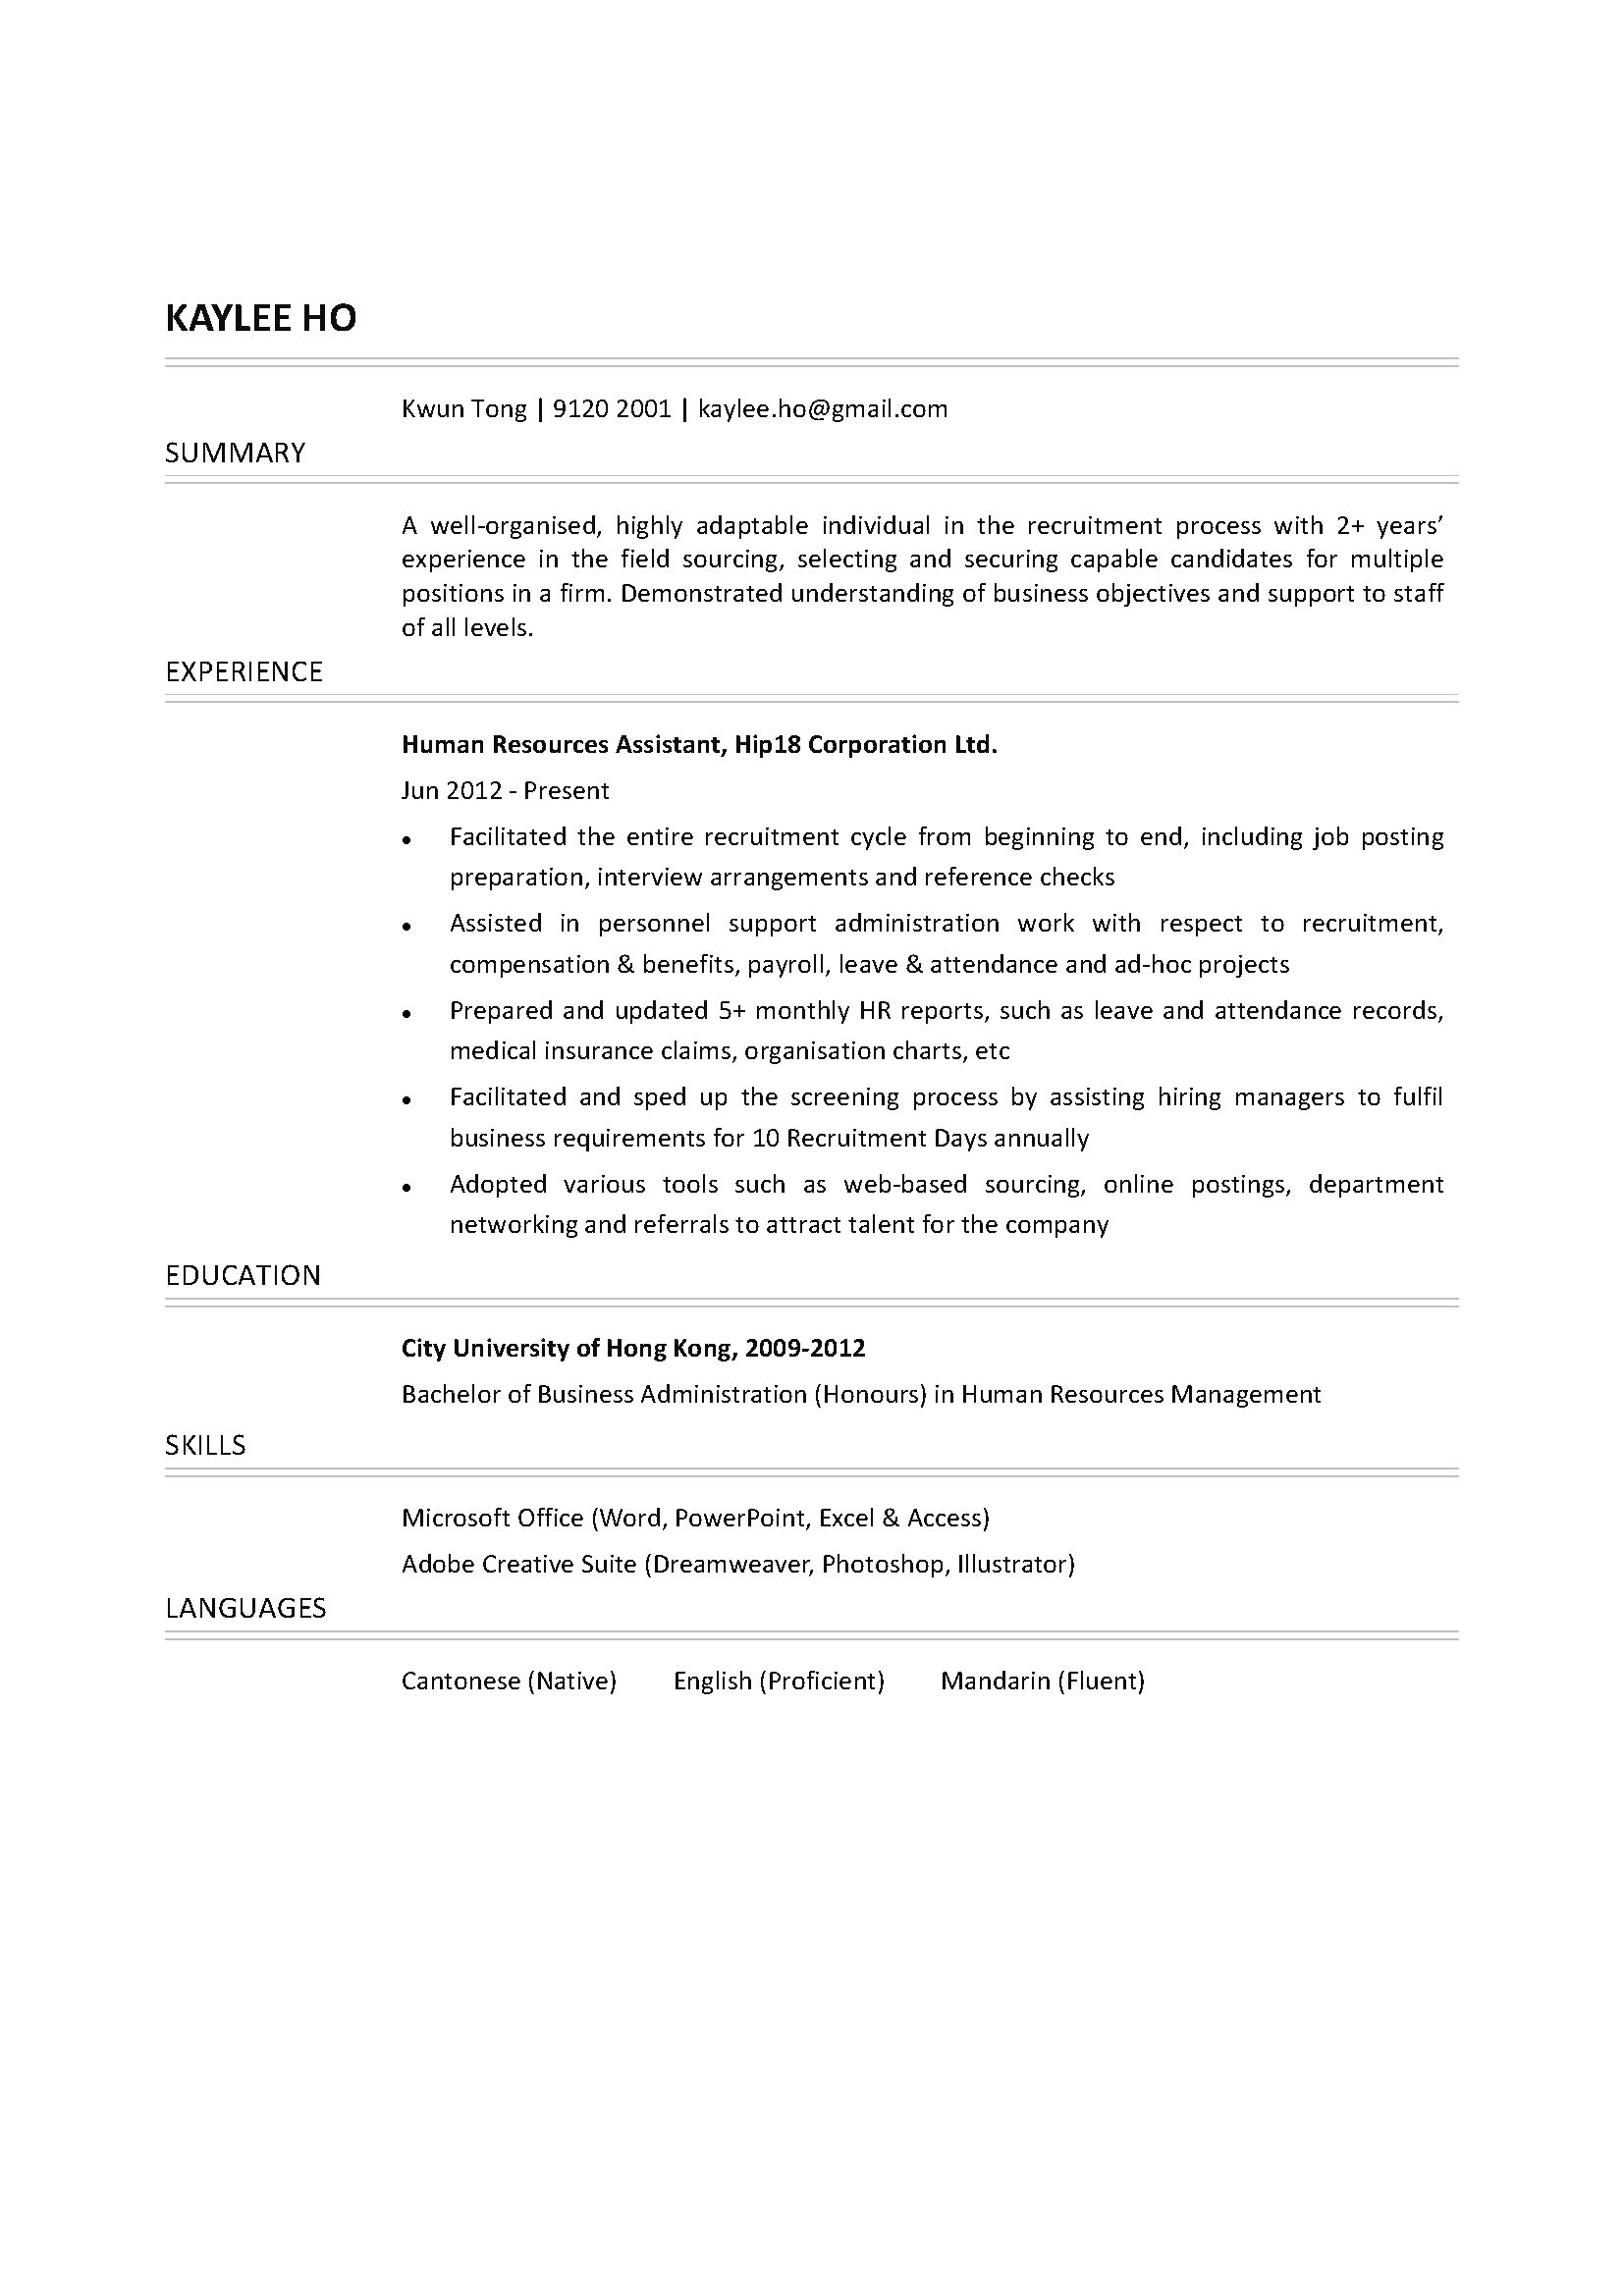 Human Resources Resume Example Human Resources Assistant Cv Ctgoodjobs Powered By